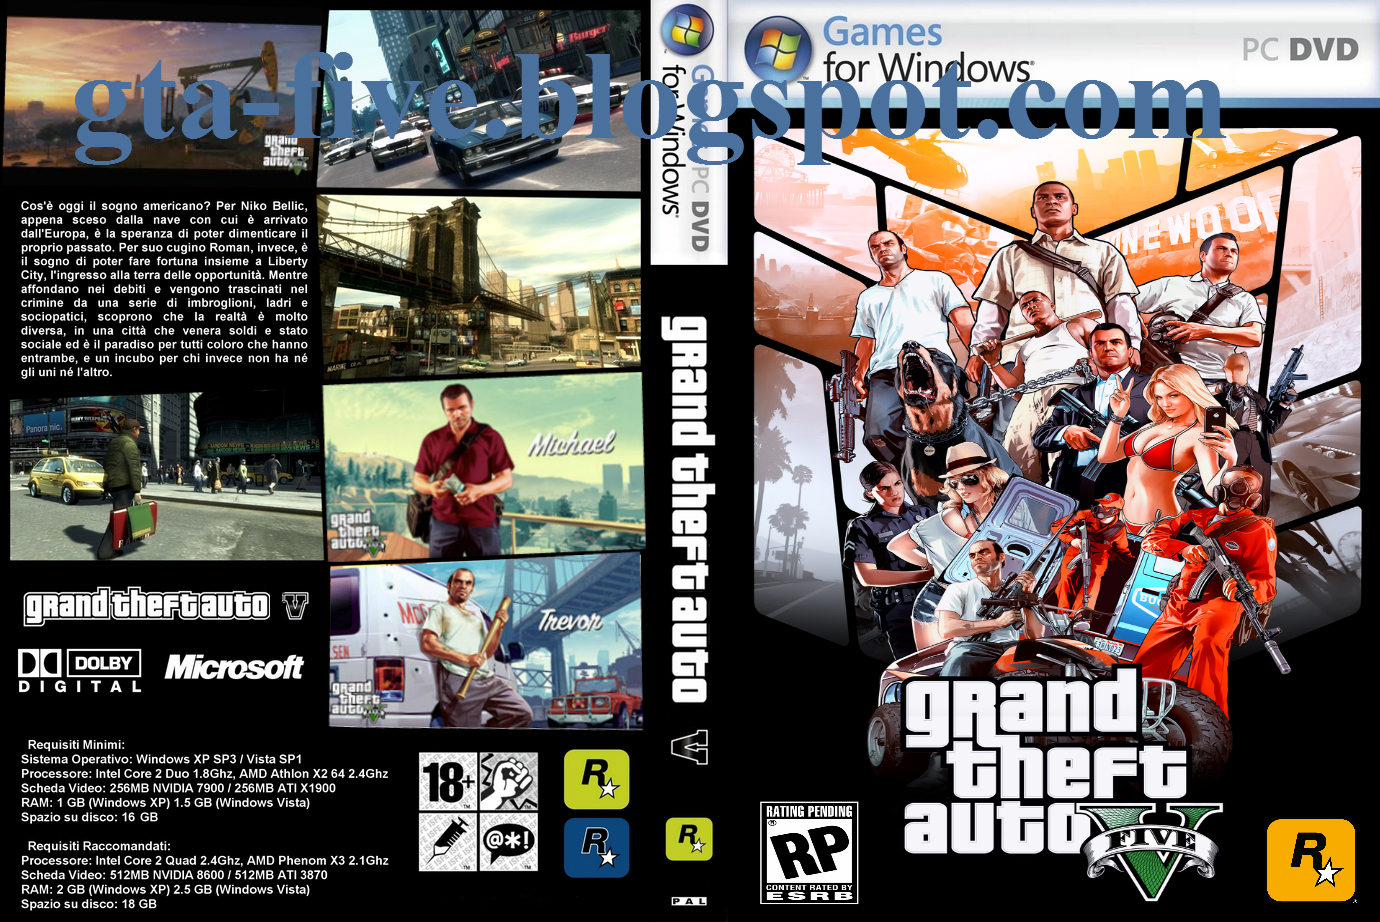 download grand theft auto 5 setup for pc